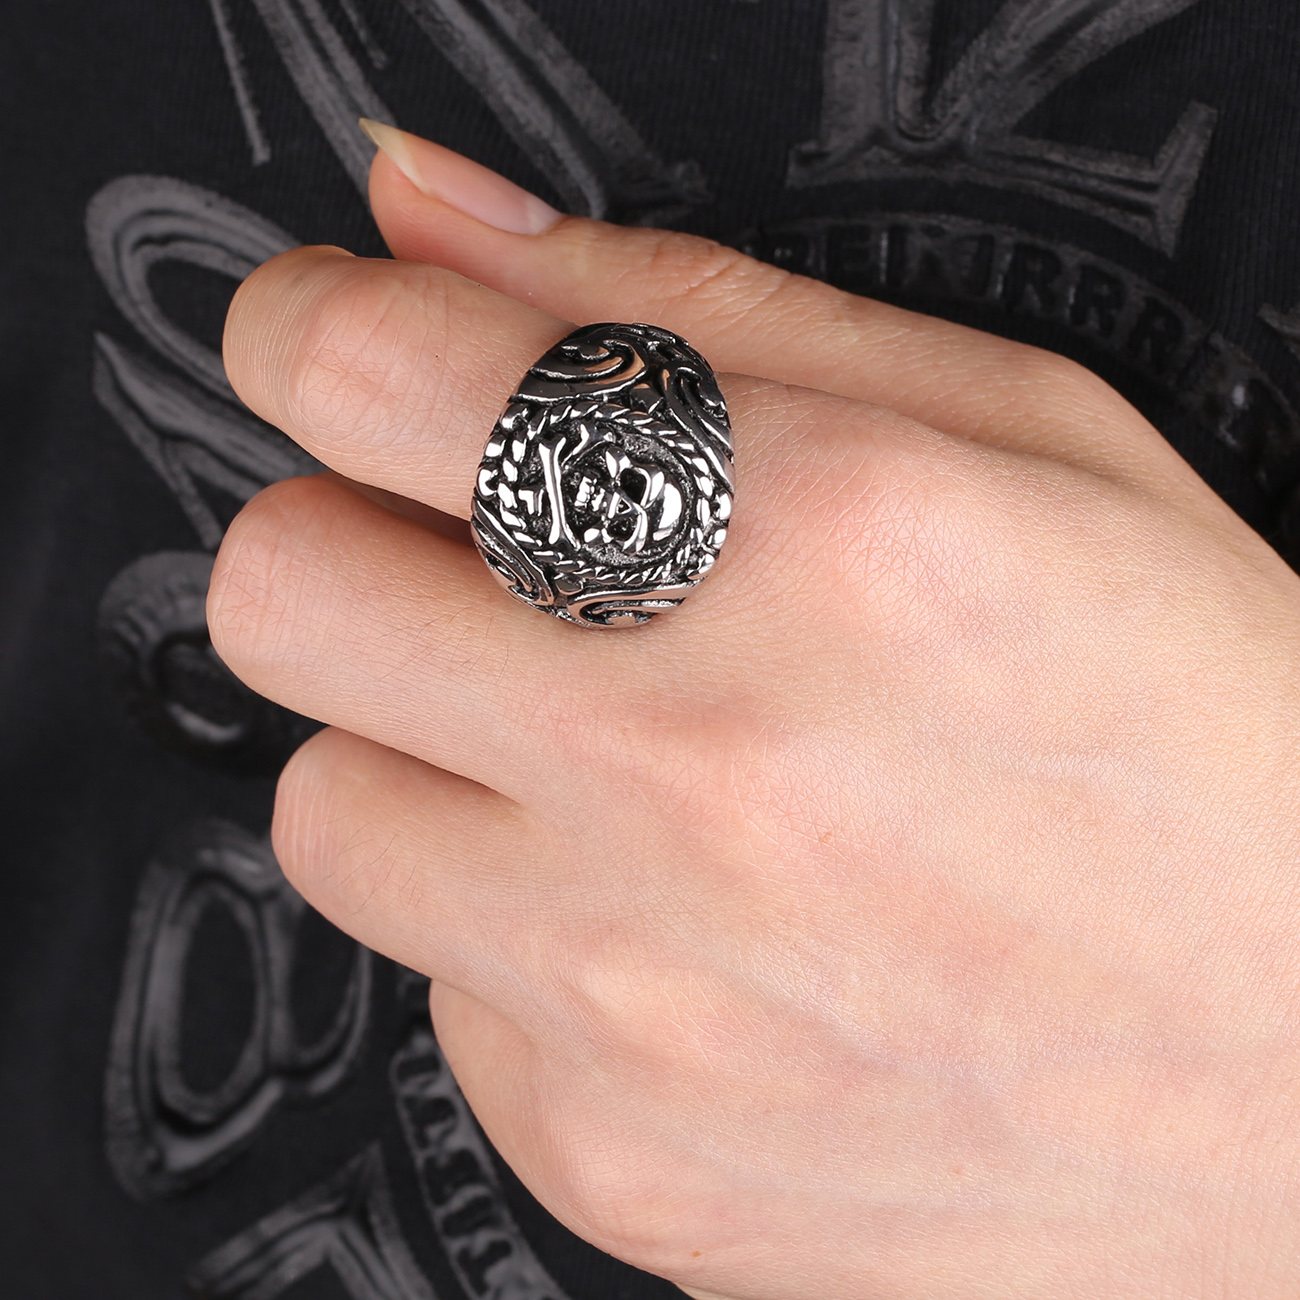 male quality rings ring dhgate skeleton from men jewelry product skull stainless high steel com for black